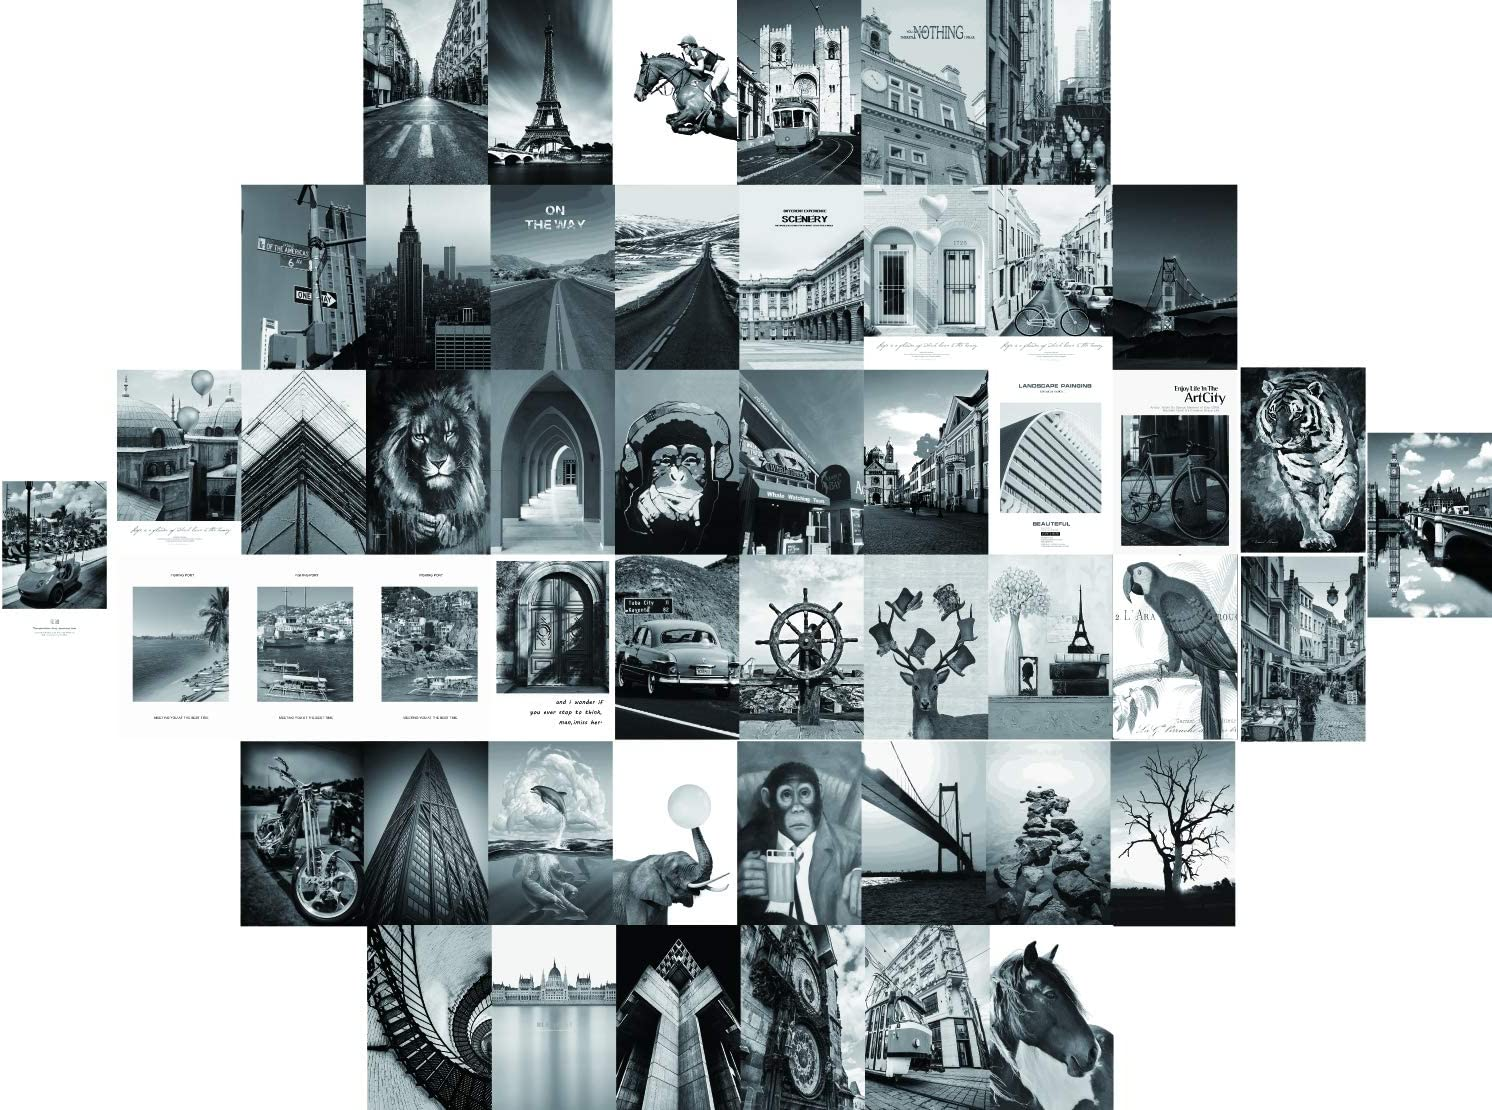 Black White Retro Wall Collage Kit Aesthetic Pictures, Bedroom Decor for Teen, Aesthetic Posters, Set Of 50 Photo Wall Collage Kit For Young Adults' Bedroom Decor, Collage Kit (4x6 inch)